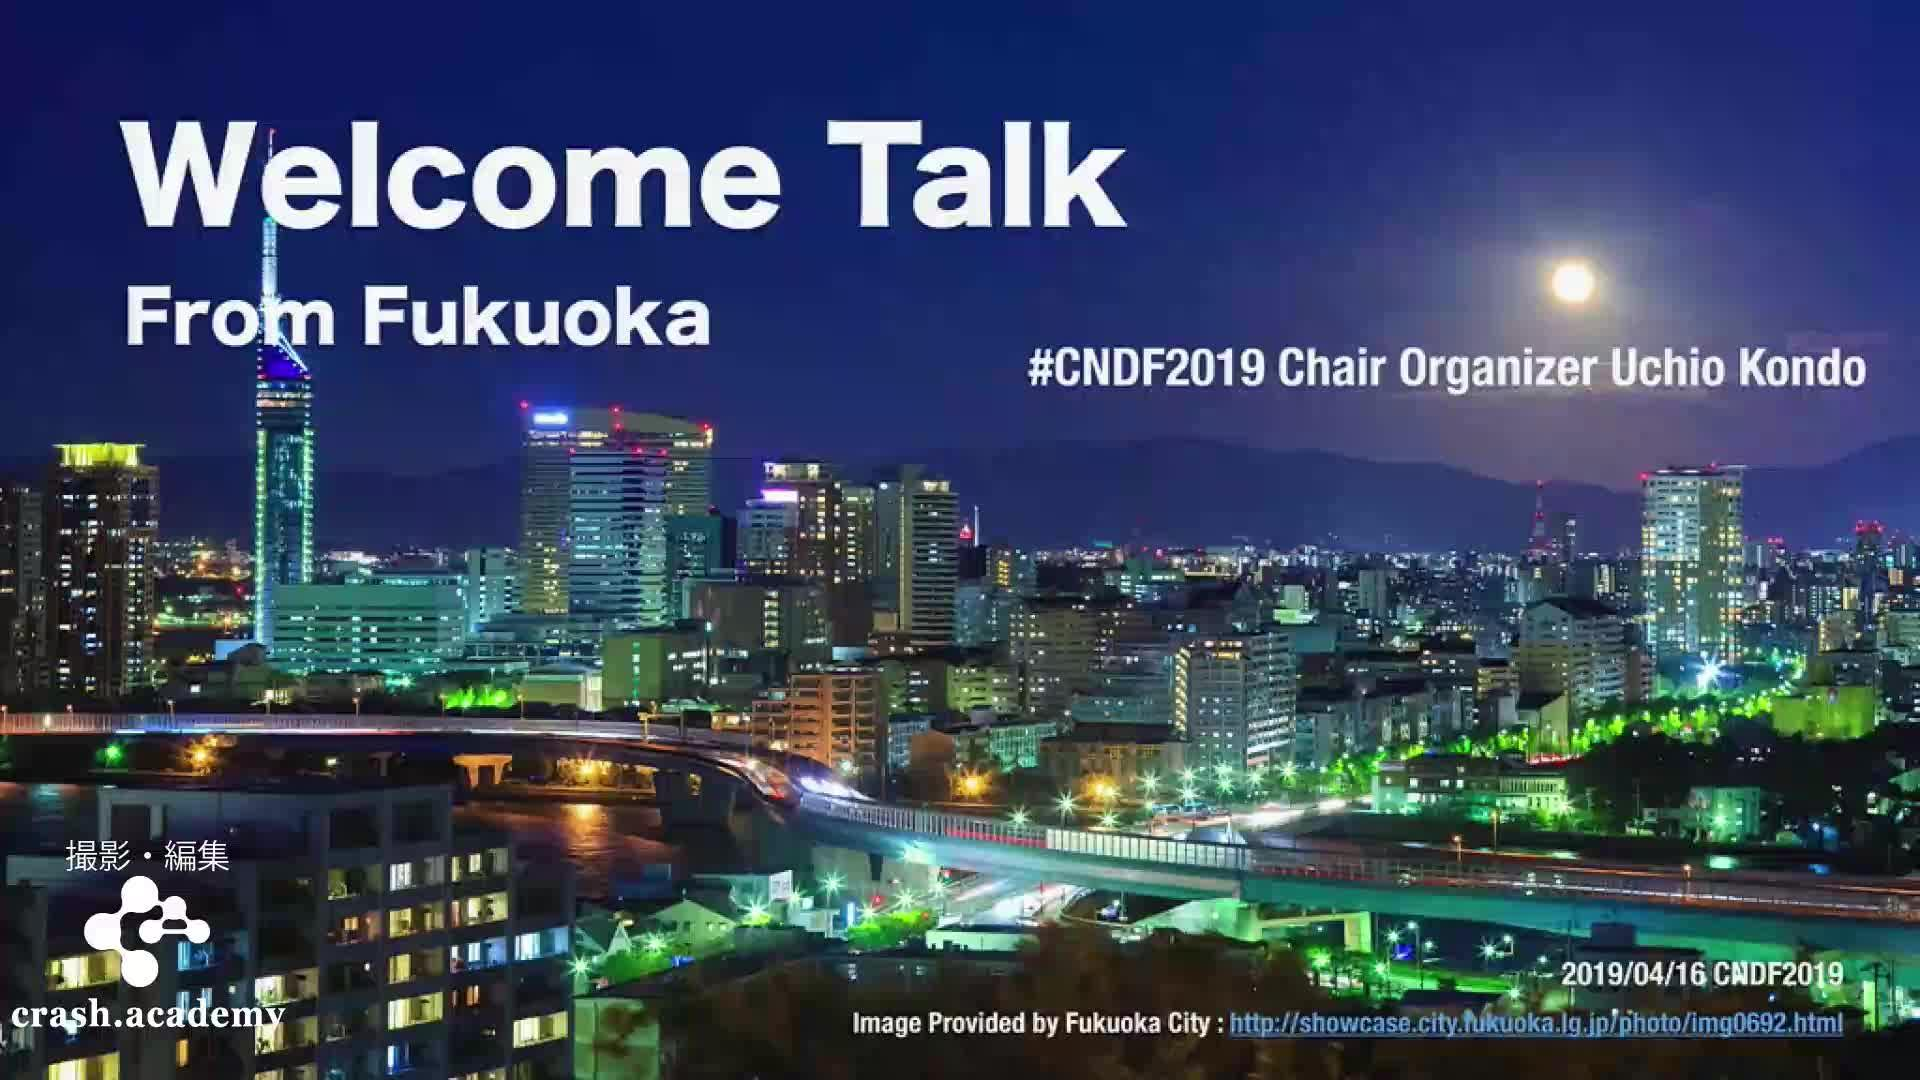 Welcome Talk From Fukuoka